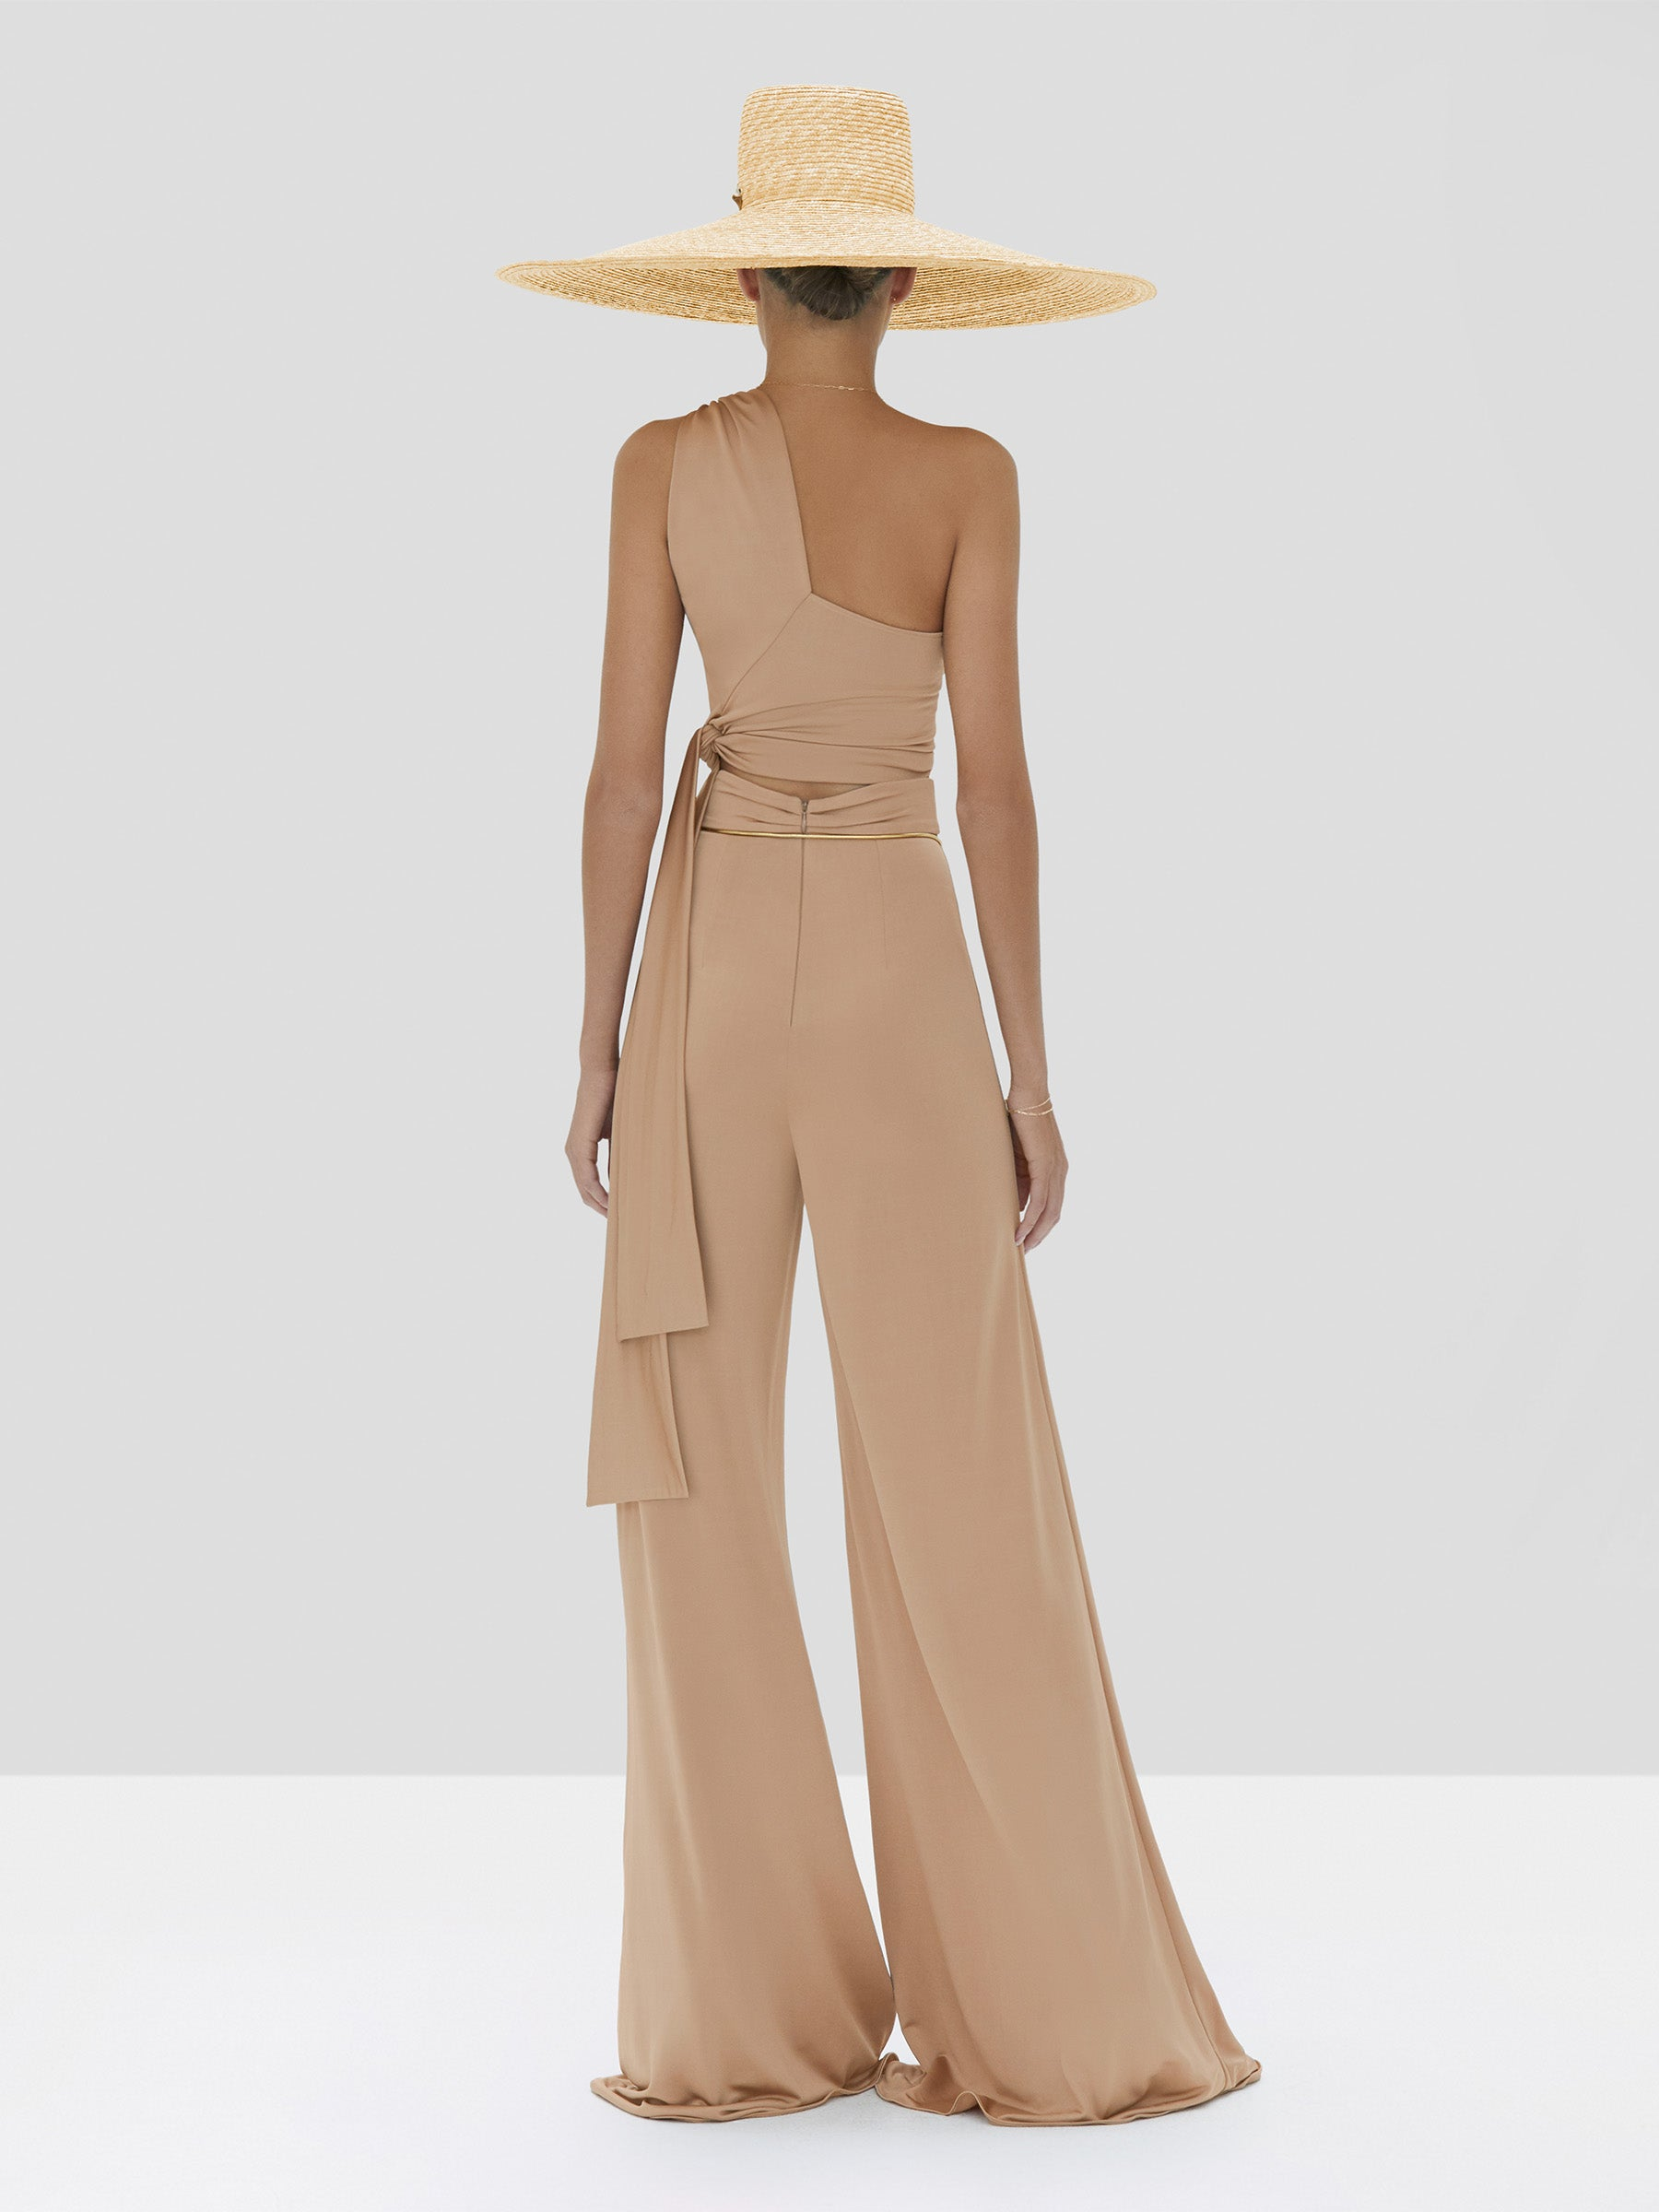 Alexis Camilo Pant and Gwen Top in Tan from the Spring Summer 2020 Collection - Rear View